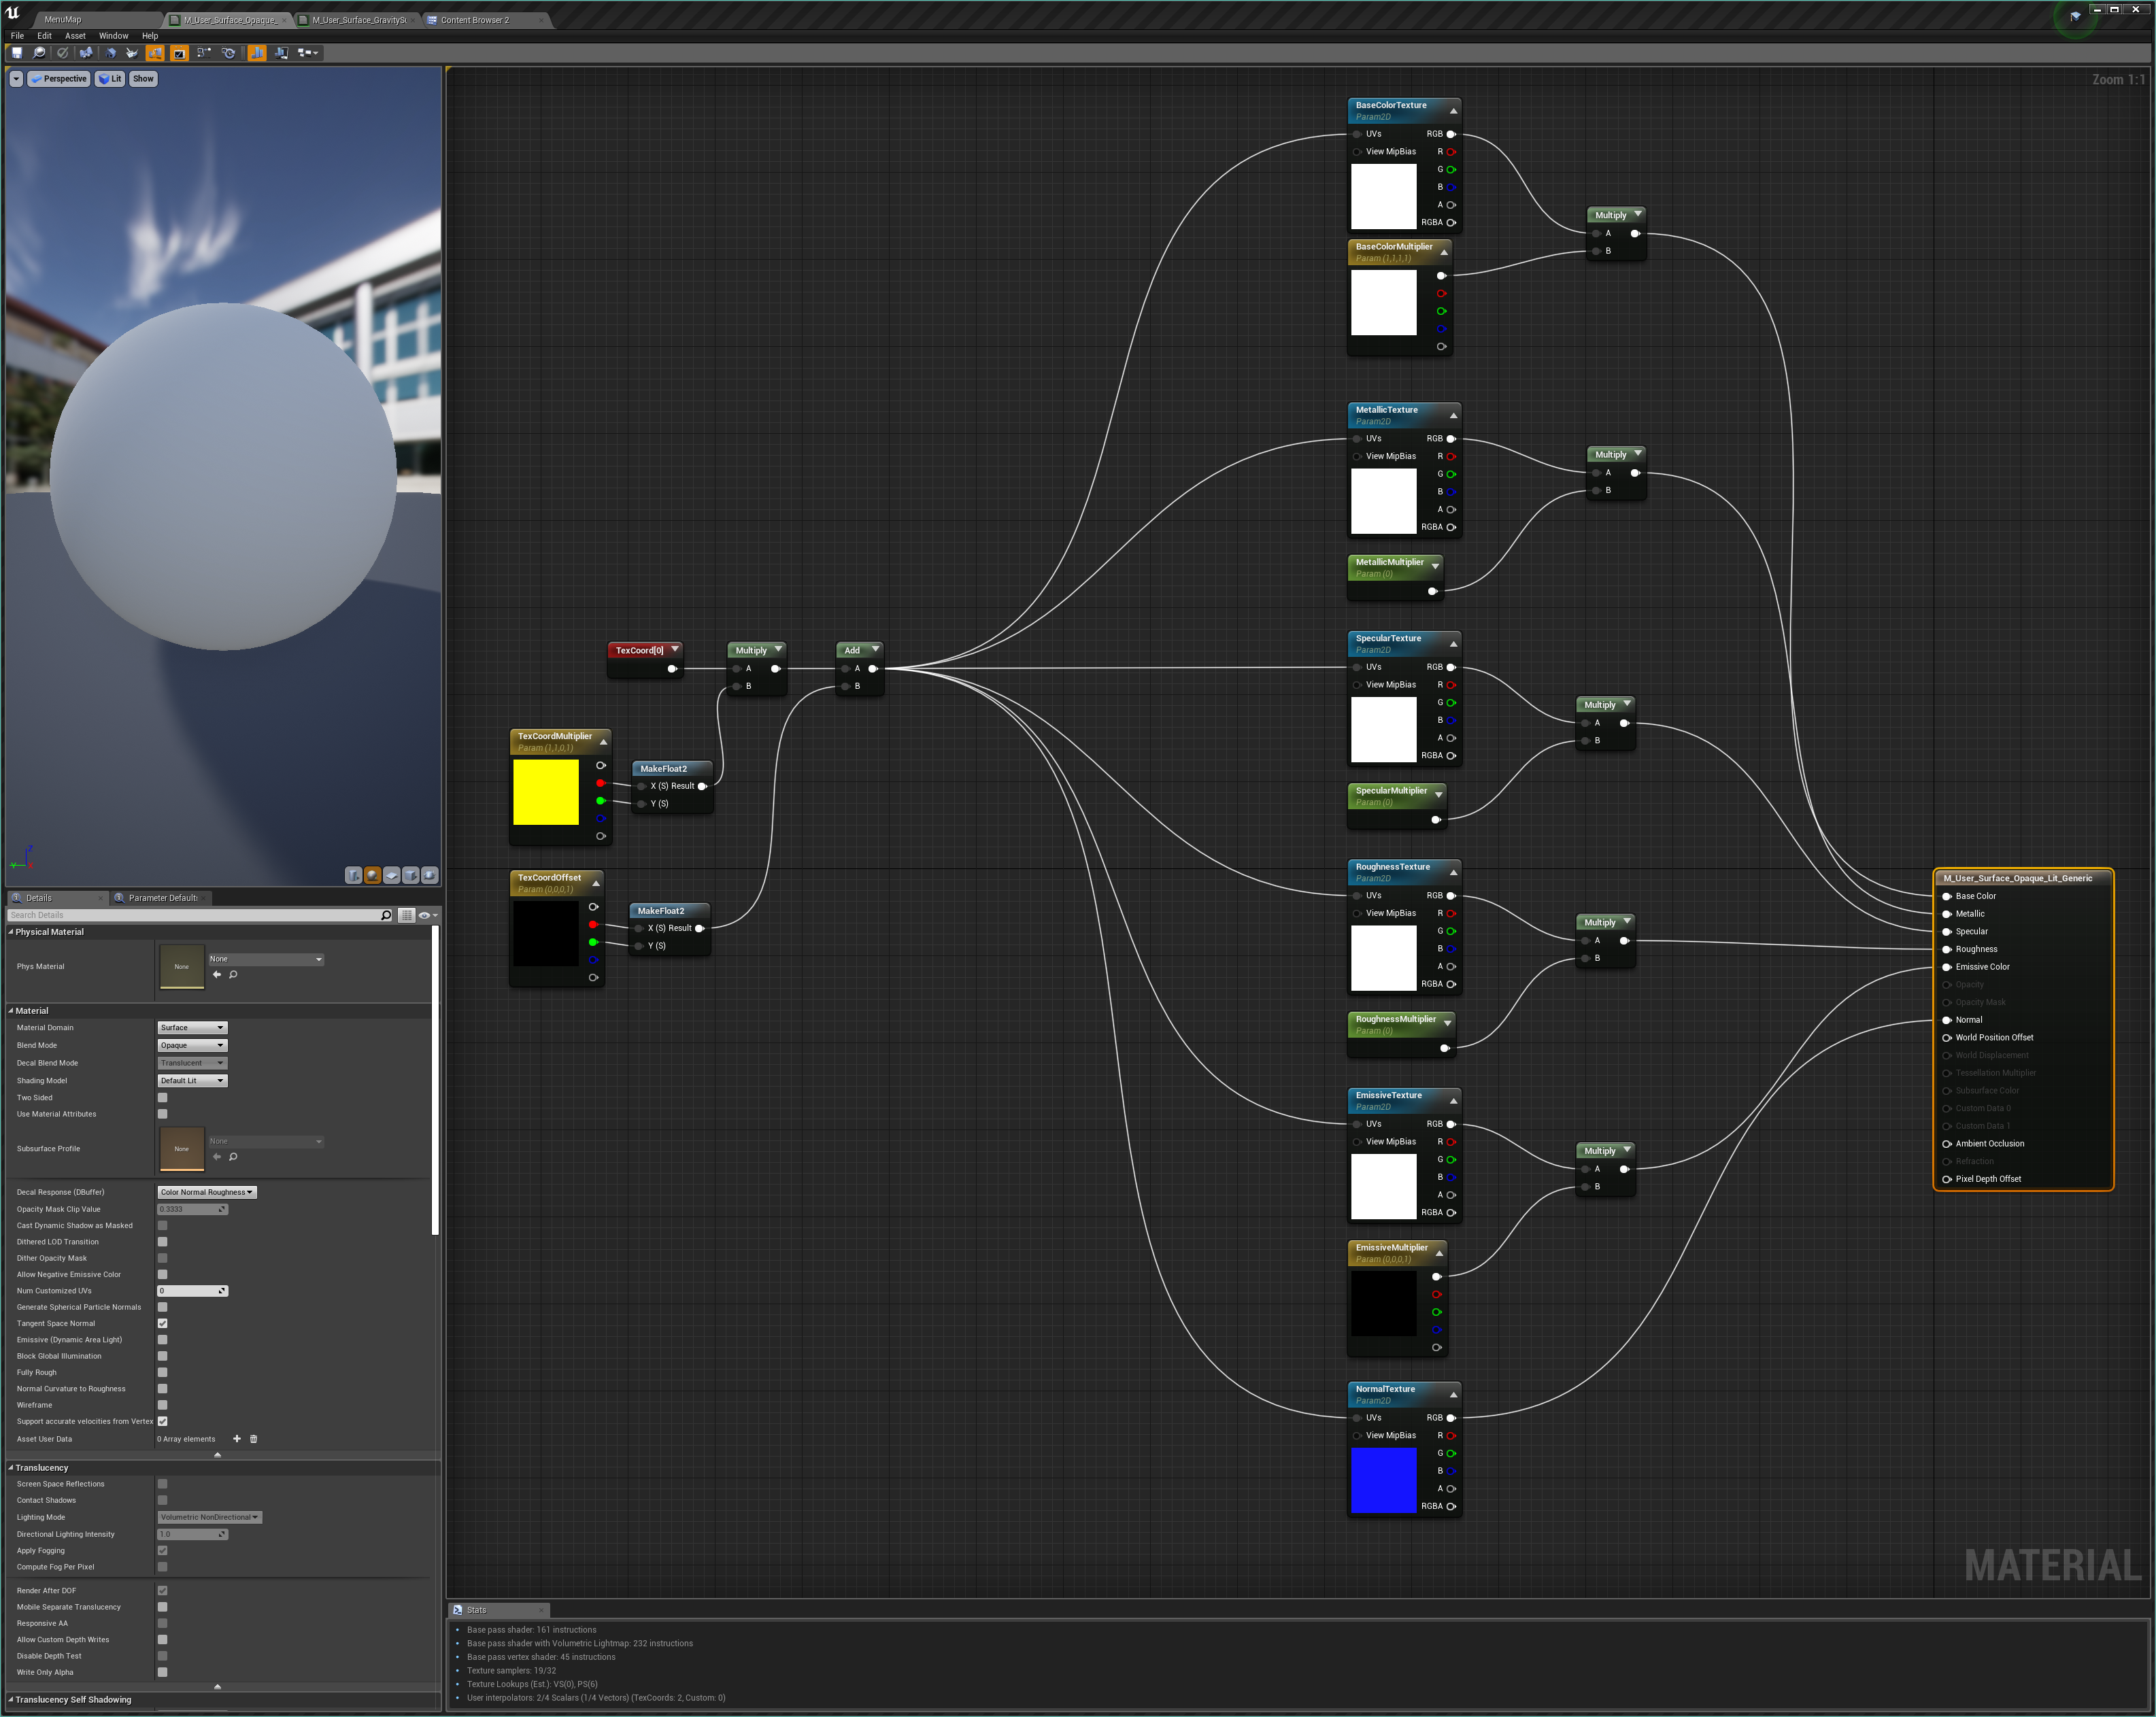 The new setup for the rolledout:mat_surface_opaque_lit_generic material base